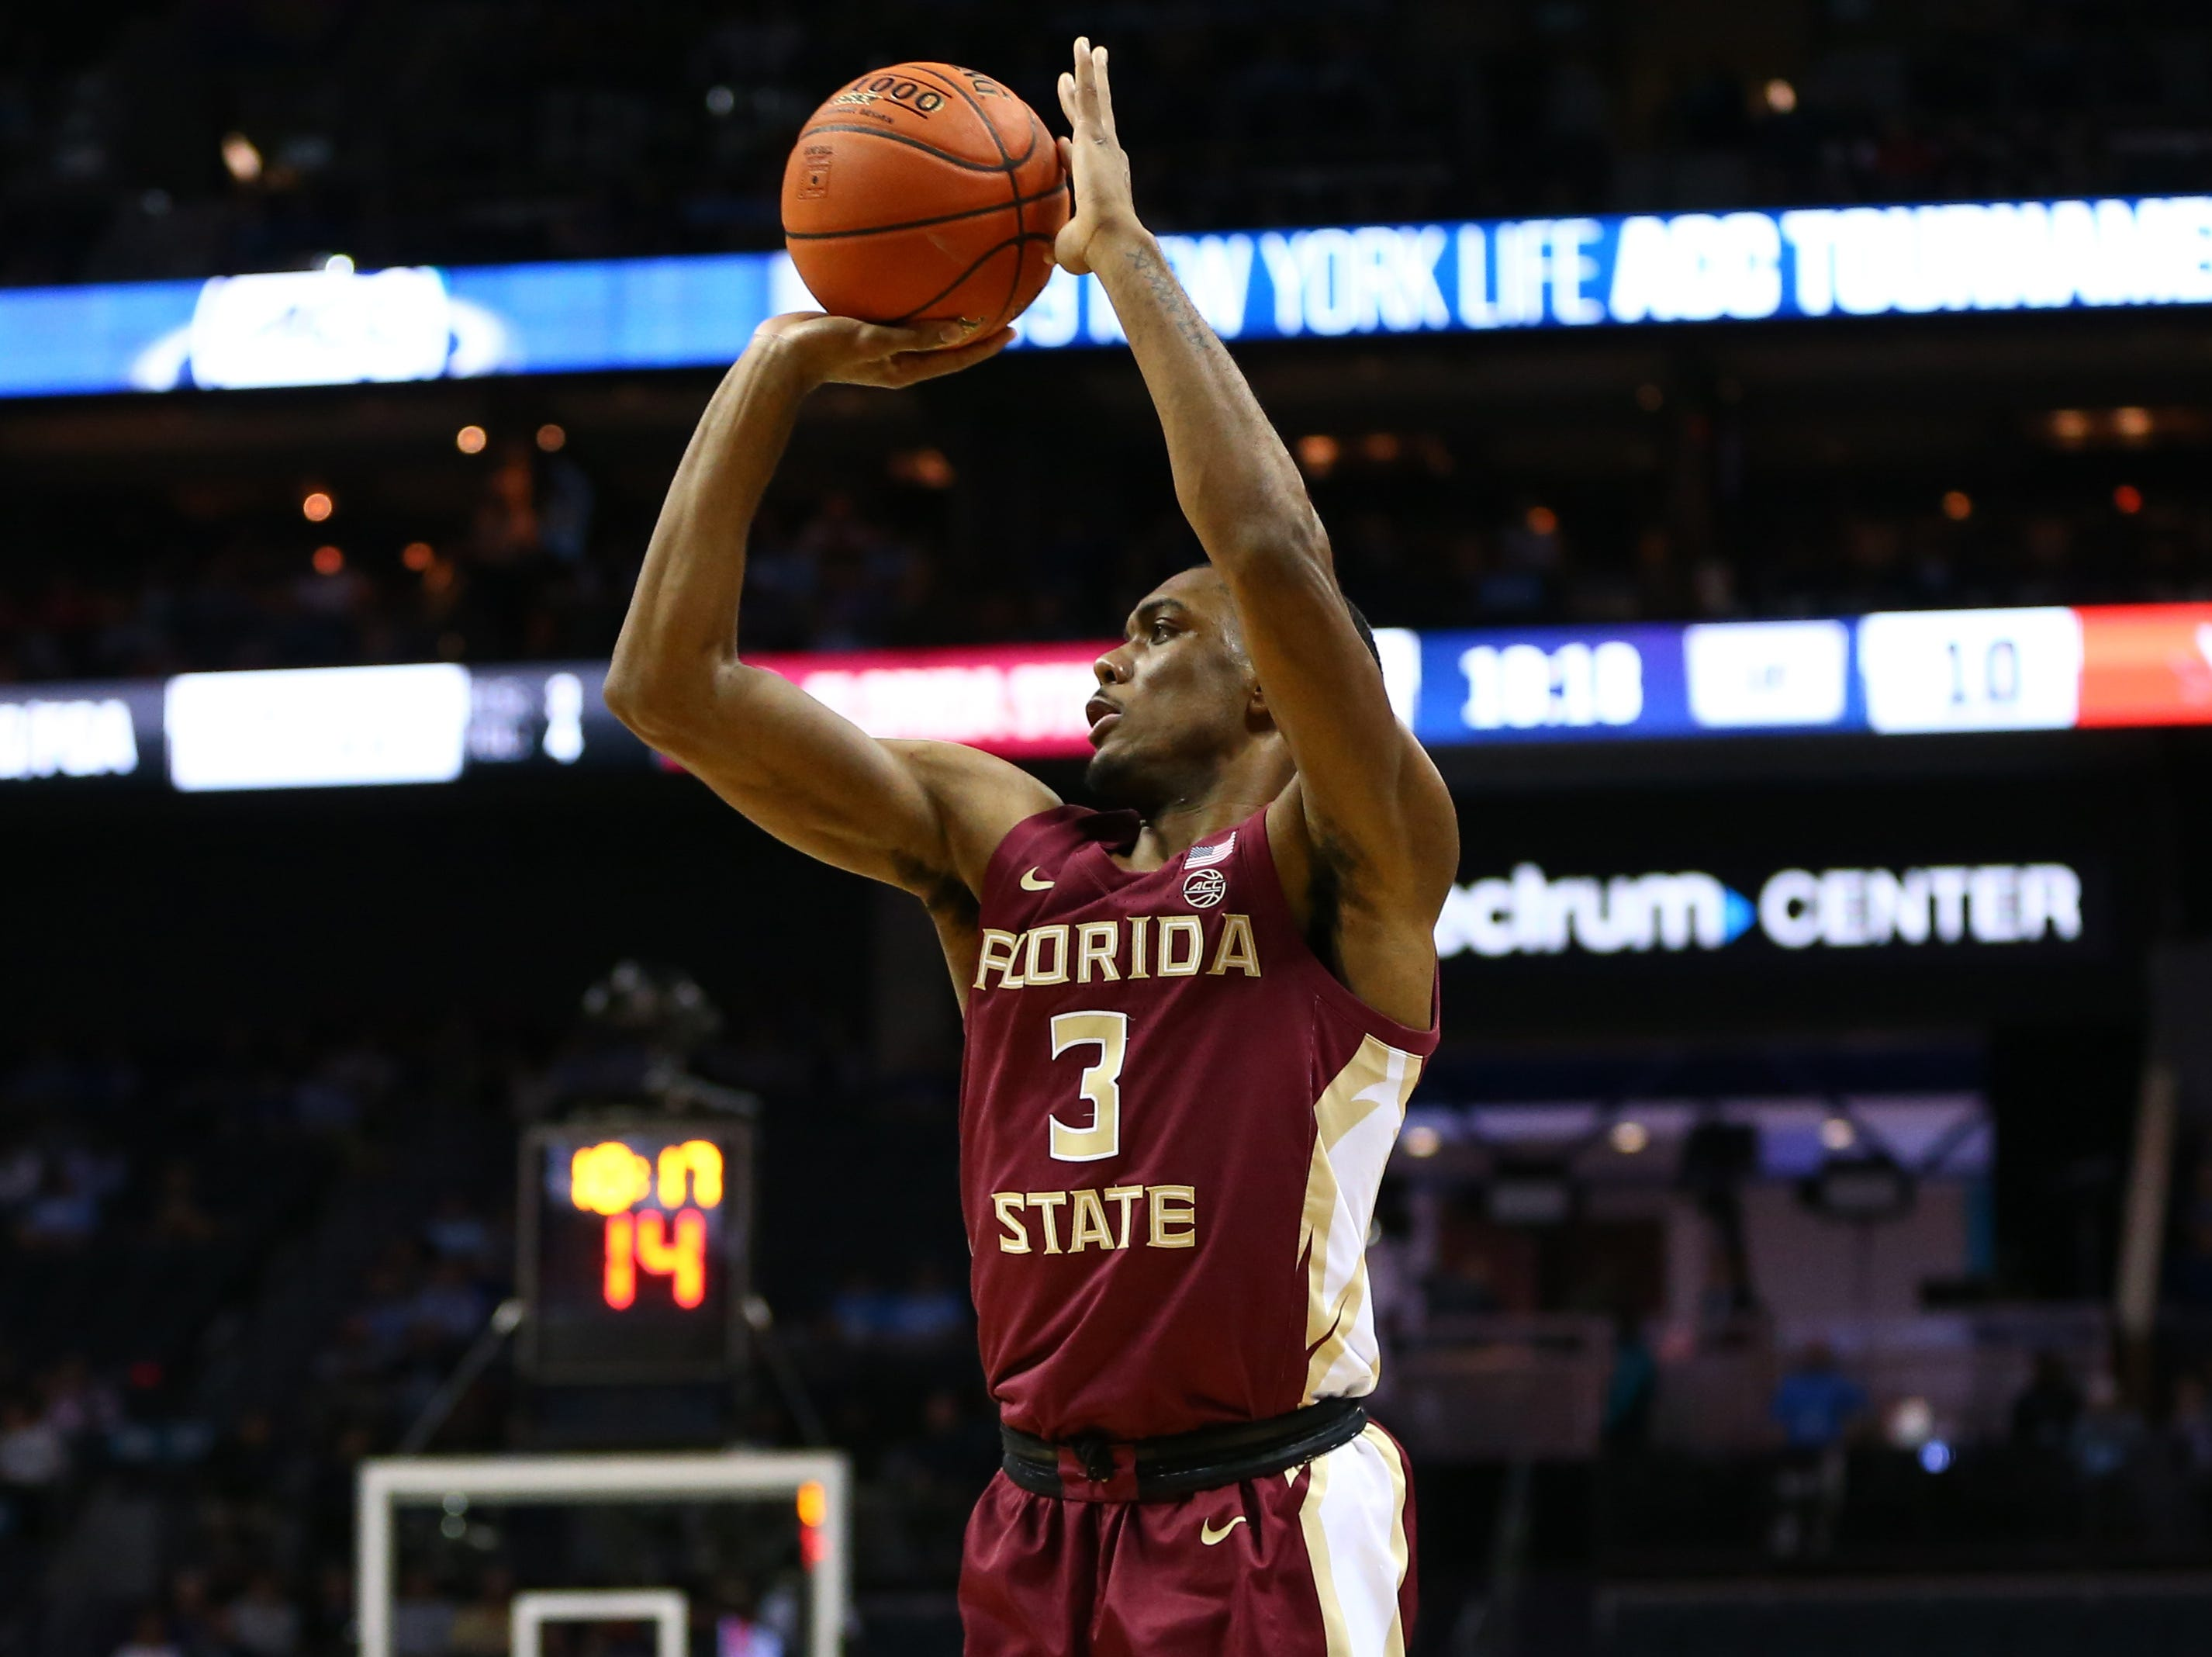 Mar 15, 2019; Charlotte, NC, USA; Florida State Seminoles guard Trent Forrest (3) shoots the ball against the Virginia Cavaliers in the first half in the ACC conference tournament at Spectrum Center. Mandatory Credit: Jeremy Brevard-USA TODAY Sports